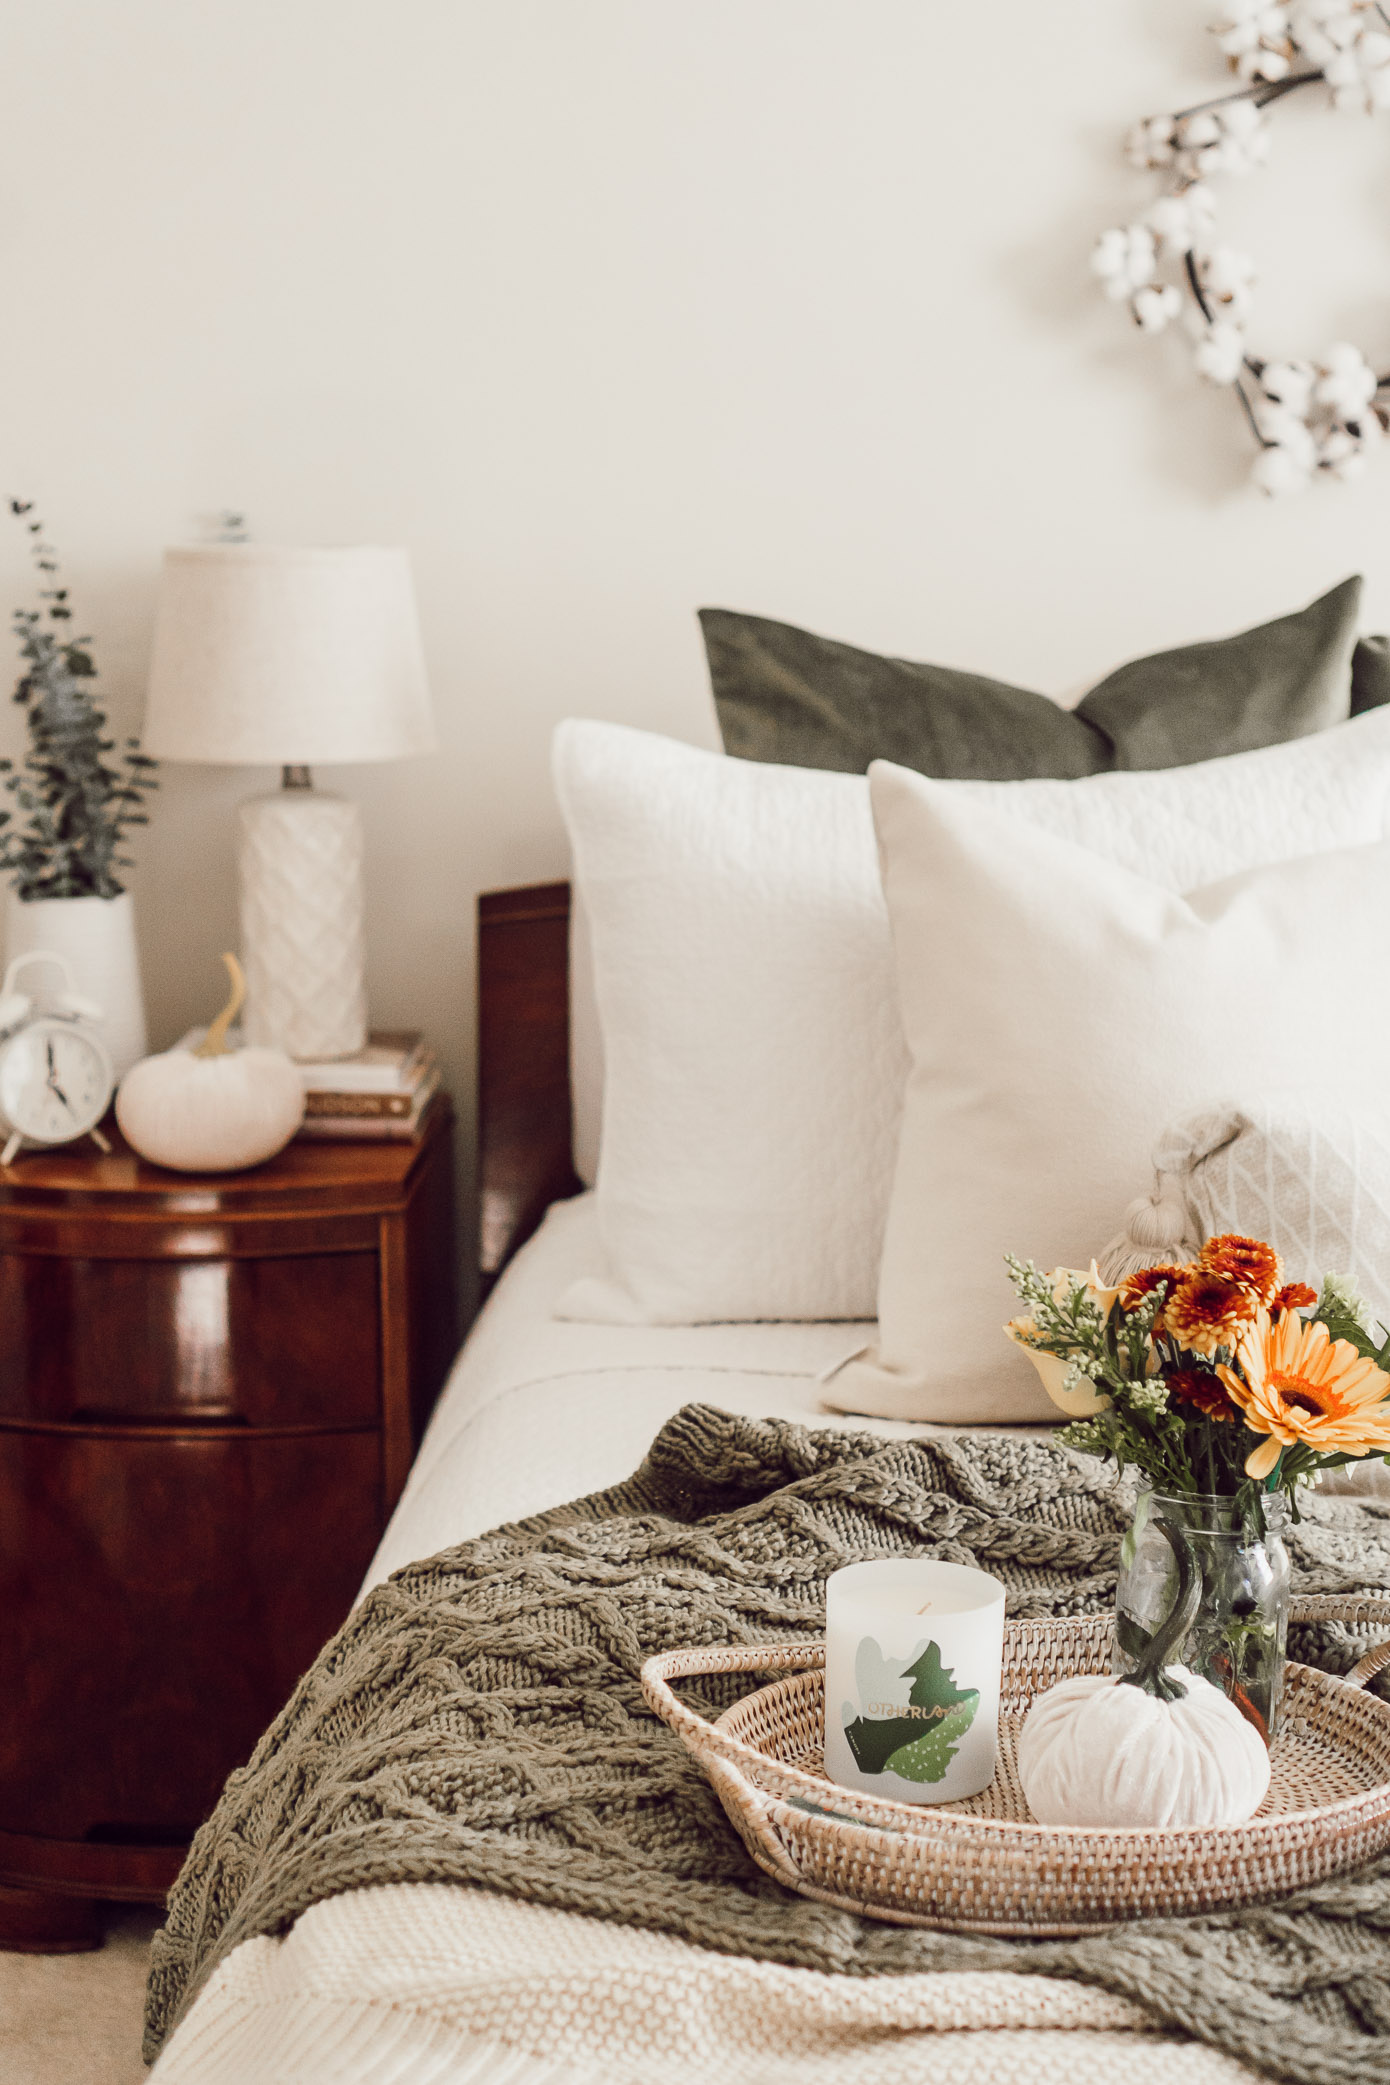 Fall Bedroom Decor | 4 Essentials For Making Your Bedroom Fall Ready - Louella Reese